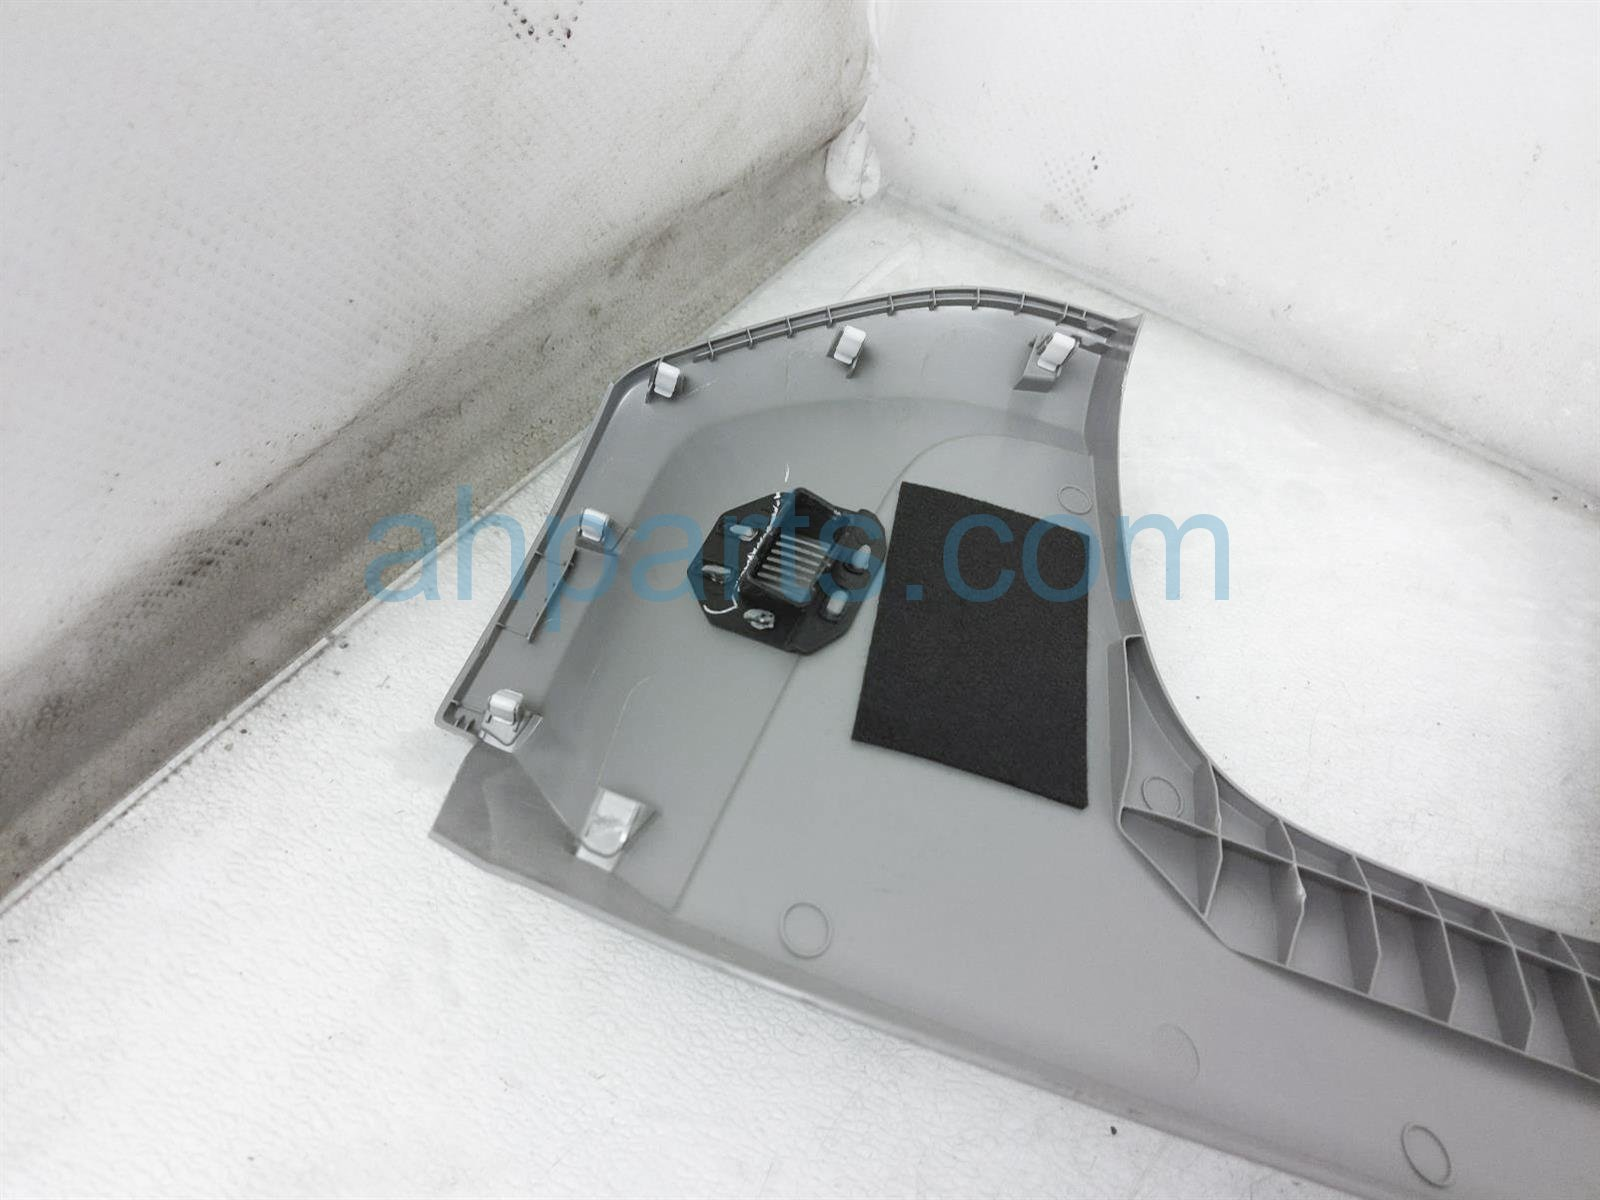 2019 Honda Pilot Shaft Steering Column Lower Cover   Gray 77300 TG7 A01ZJ Replacement